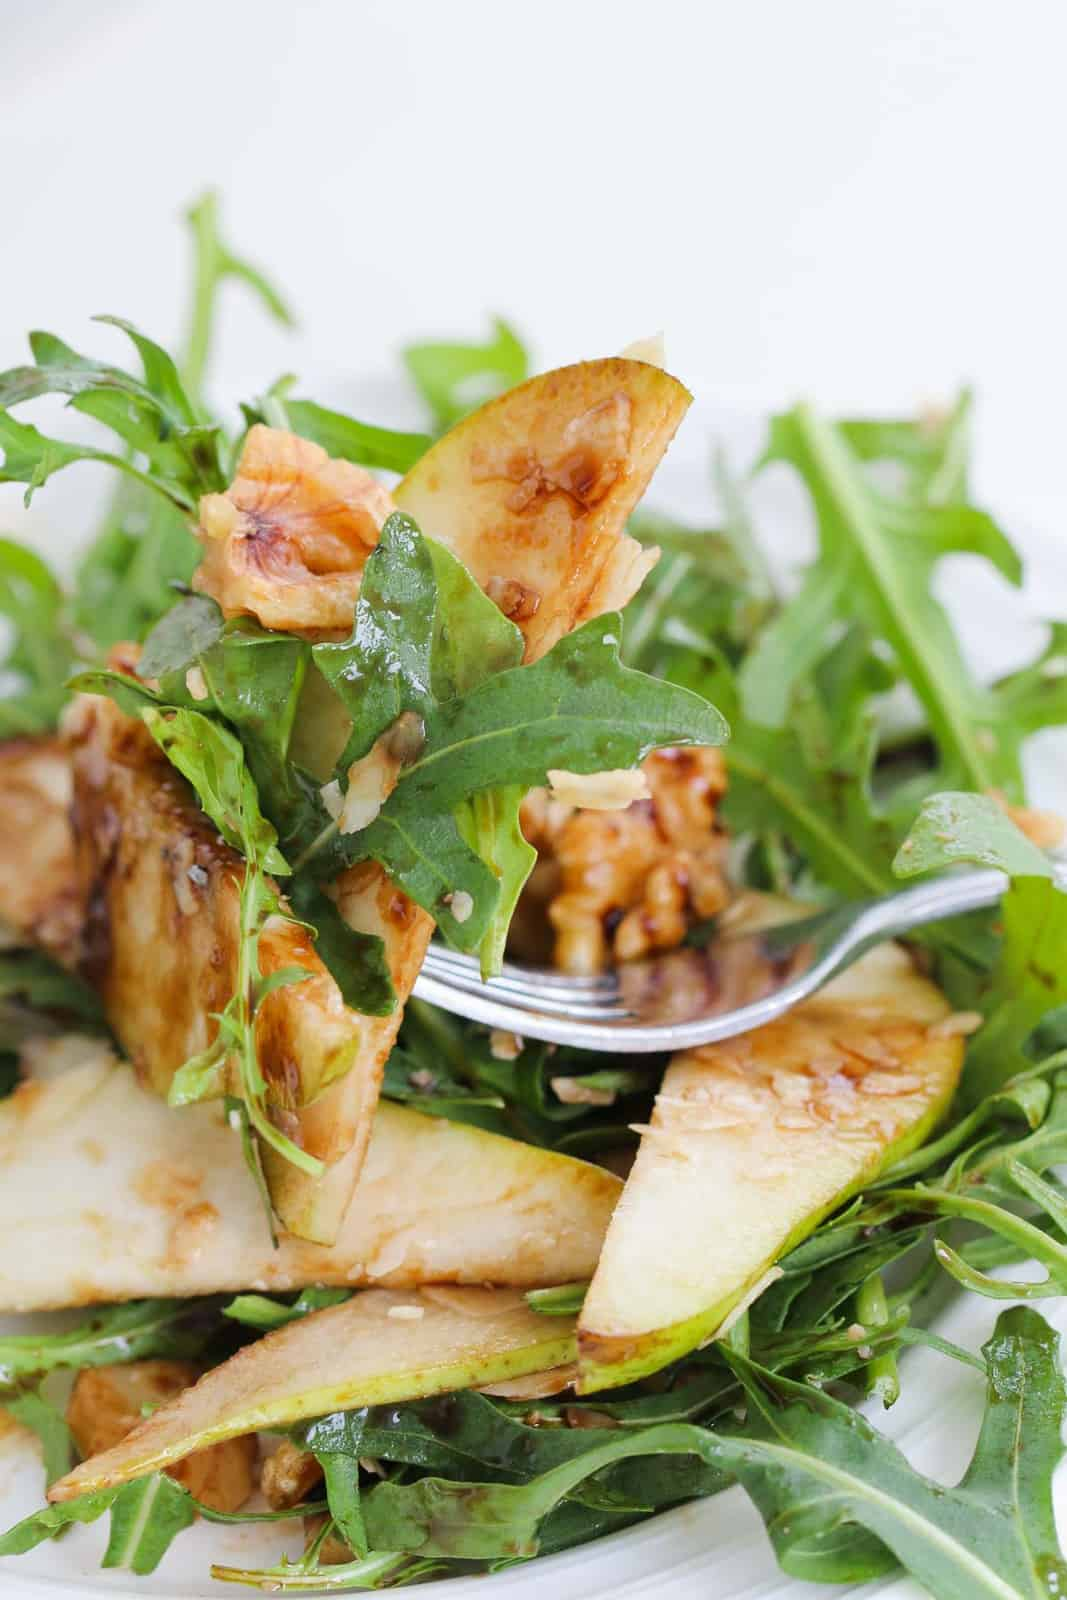 A forkful of rocket salad with pear, walnuts and parmesan.